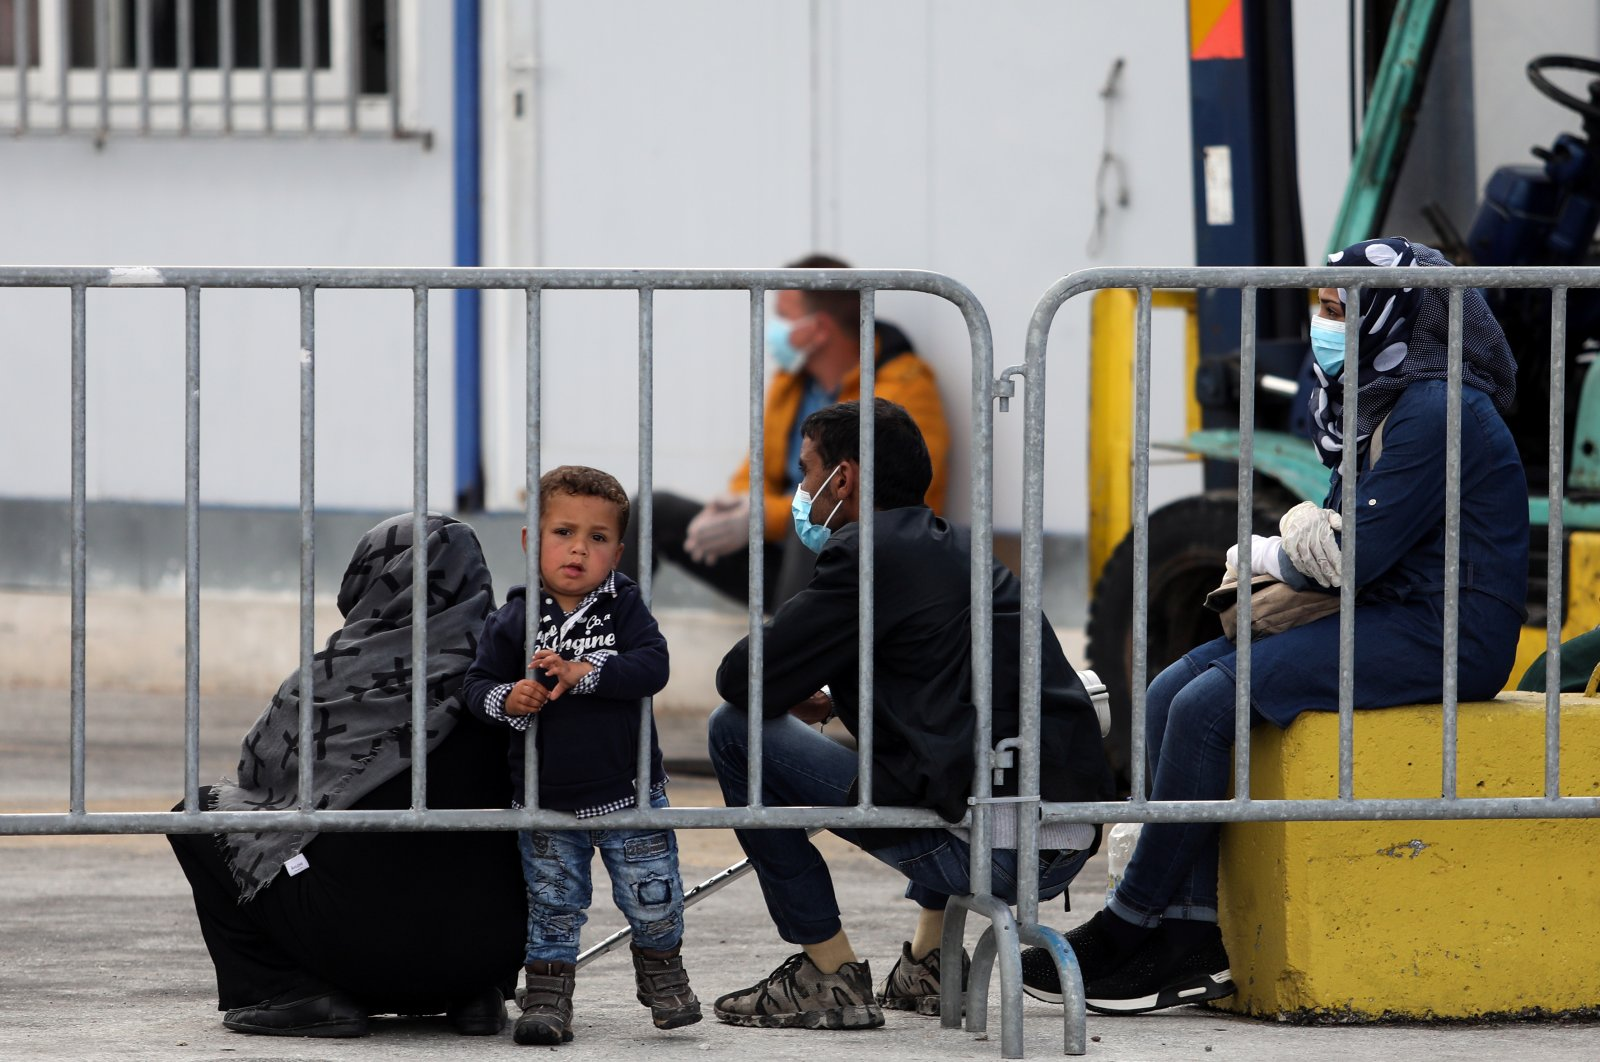 A boy looks through a metal barrier as migrants from the Moria camp wait to board a ferry that will transfer them to the mainland as a precaution against the coronavirus spread, on the island of Lesbos, Greece, May 3, 2020. (Reuters Photo)